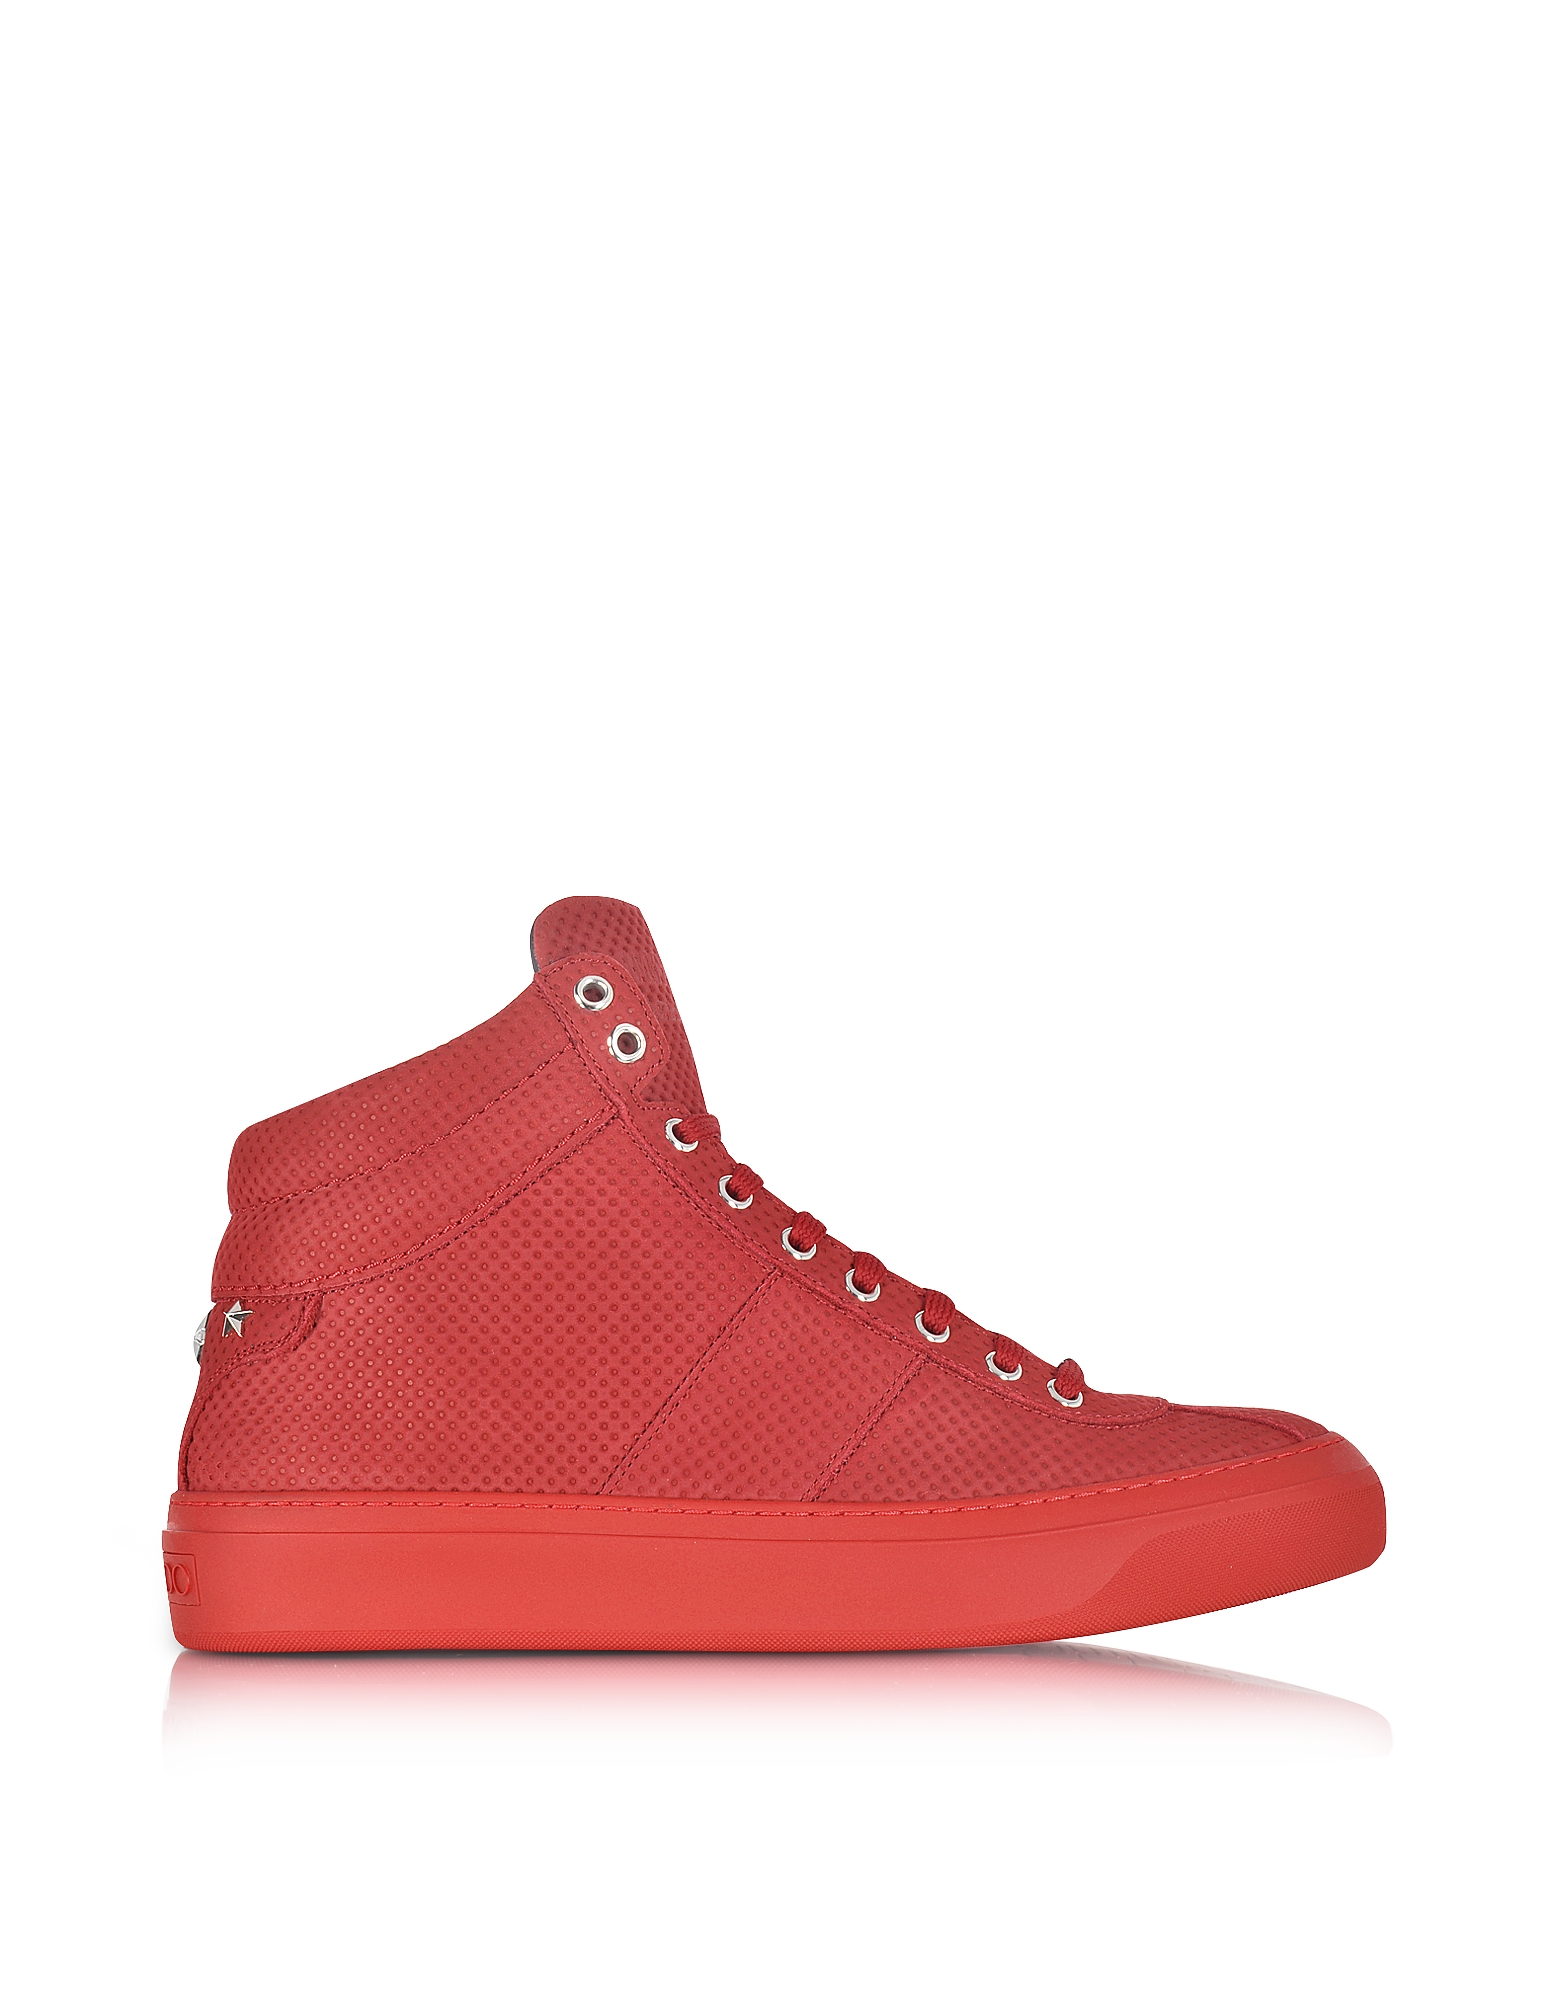 Jimmy Choo Shoes, Belgravia Deep Red Point Embossed Nubuck High Top Sneakers w/Stars